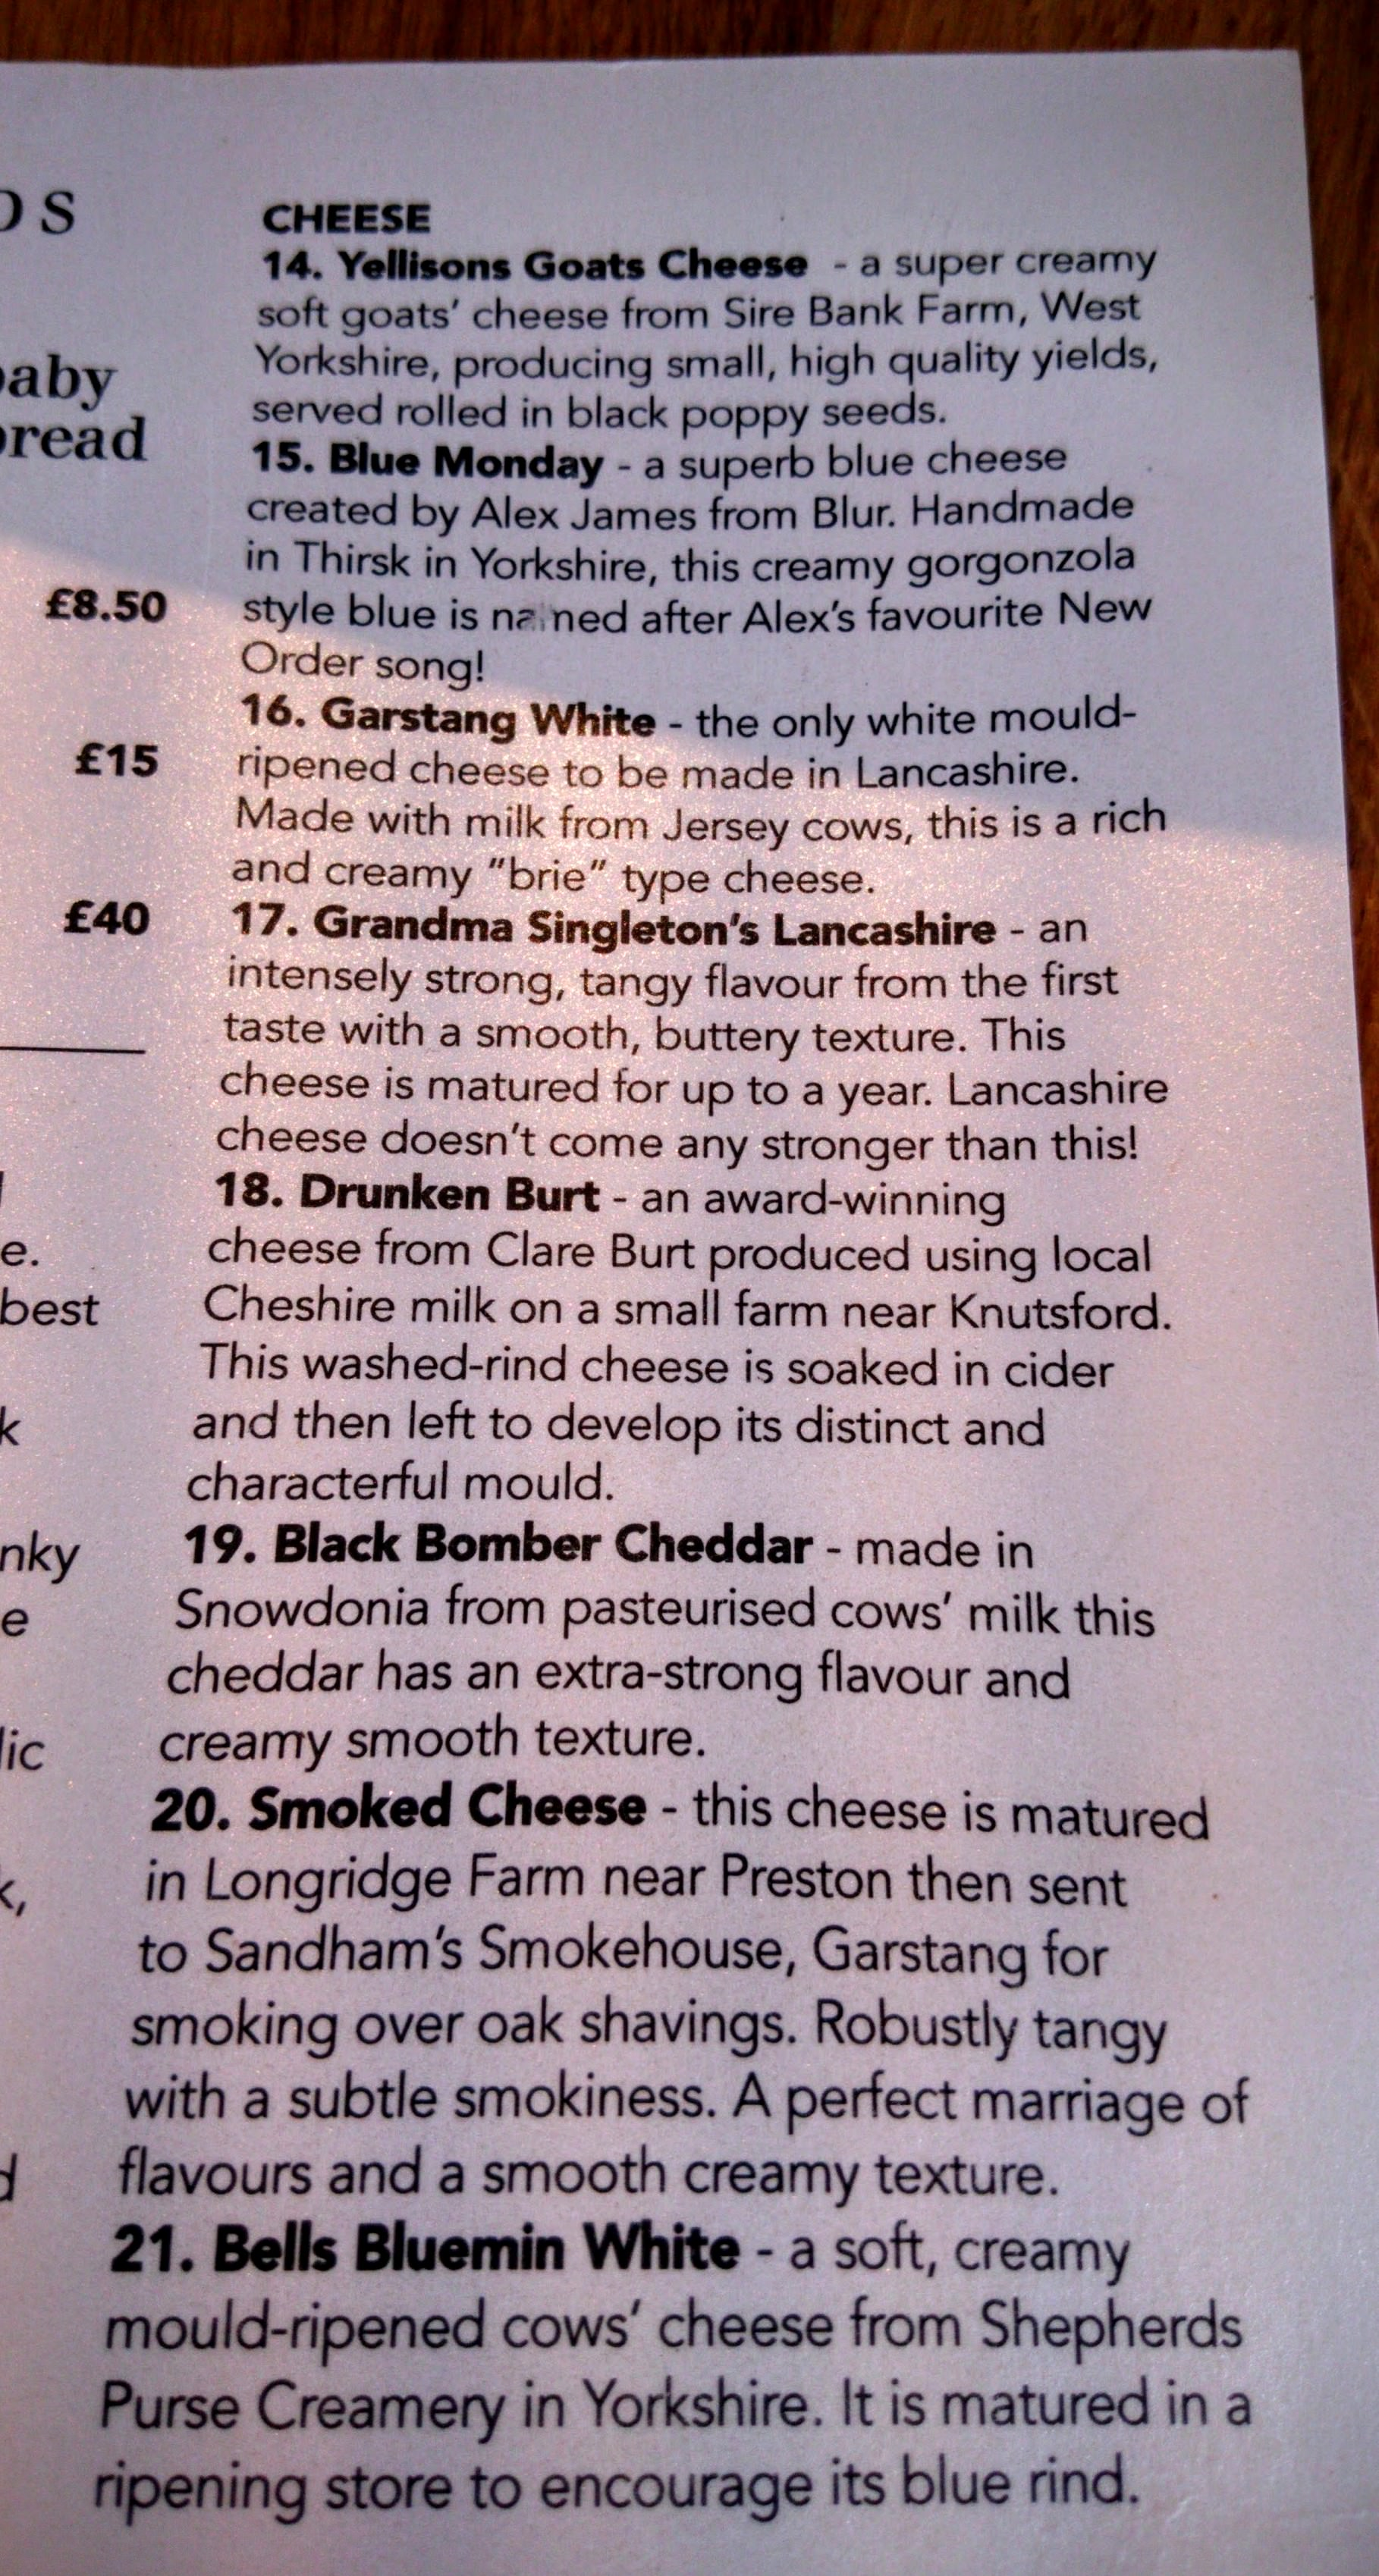 The cheese list.